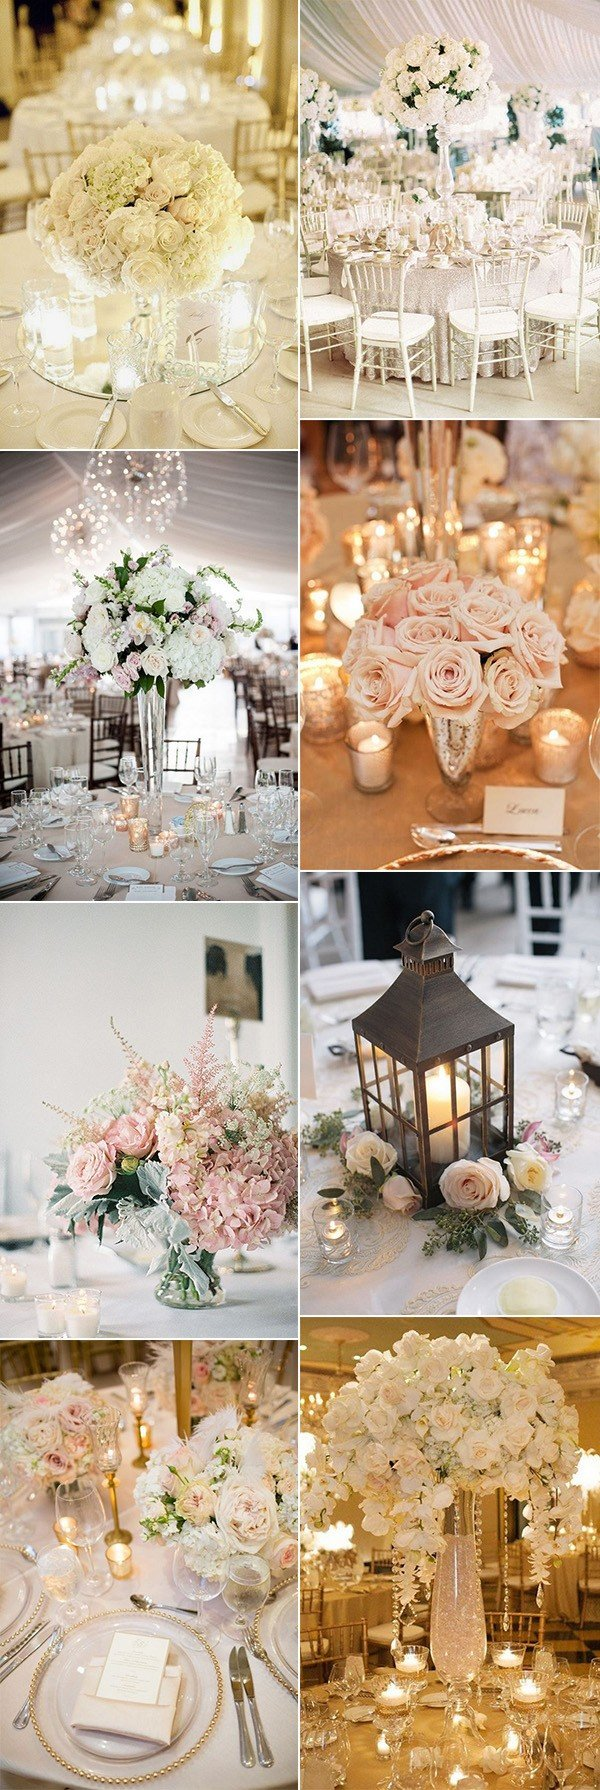 2018 trending elegant wedding centerpiece ideas